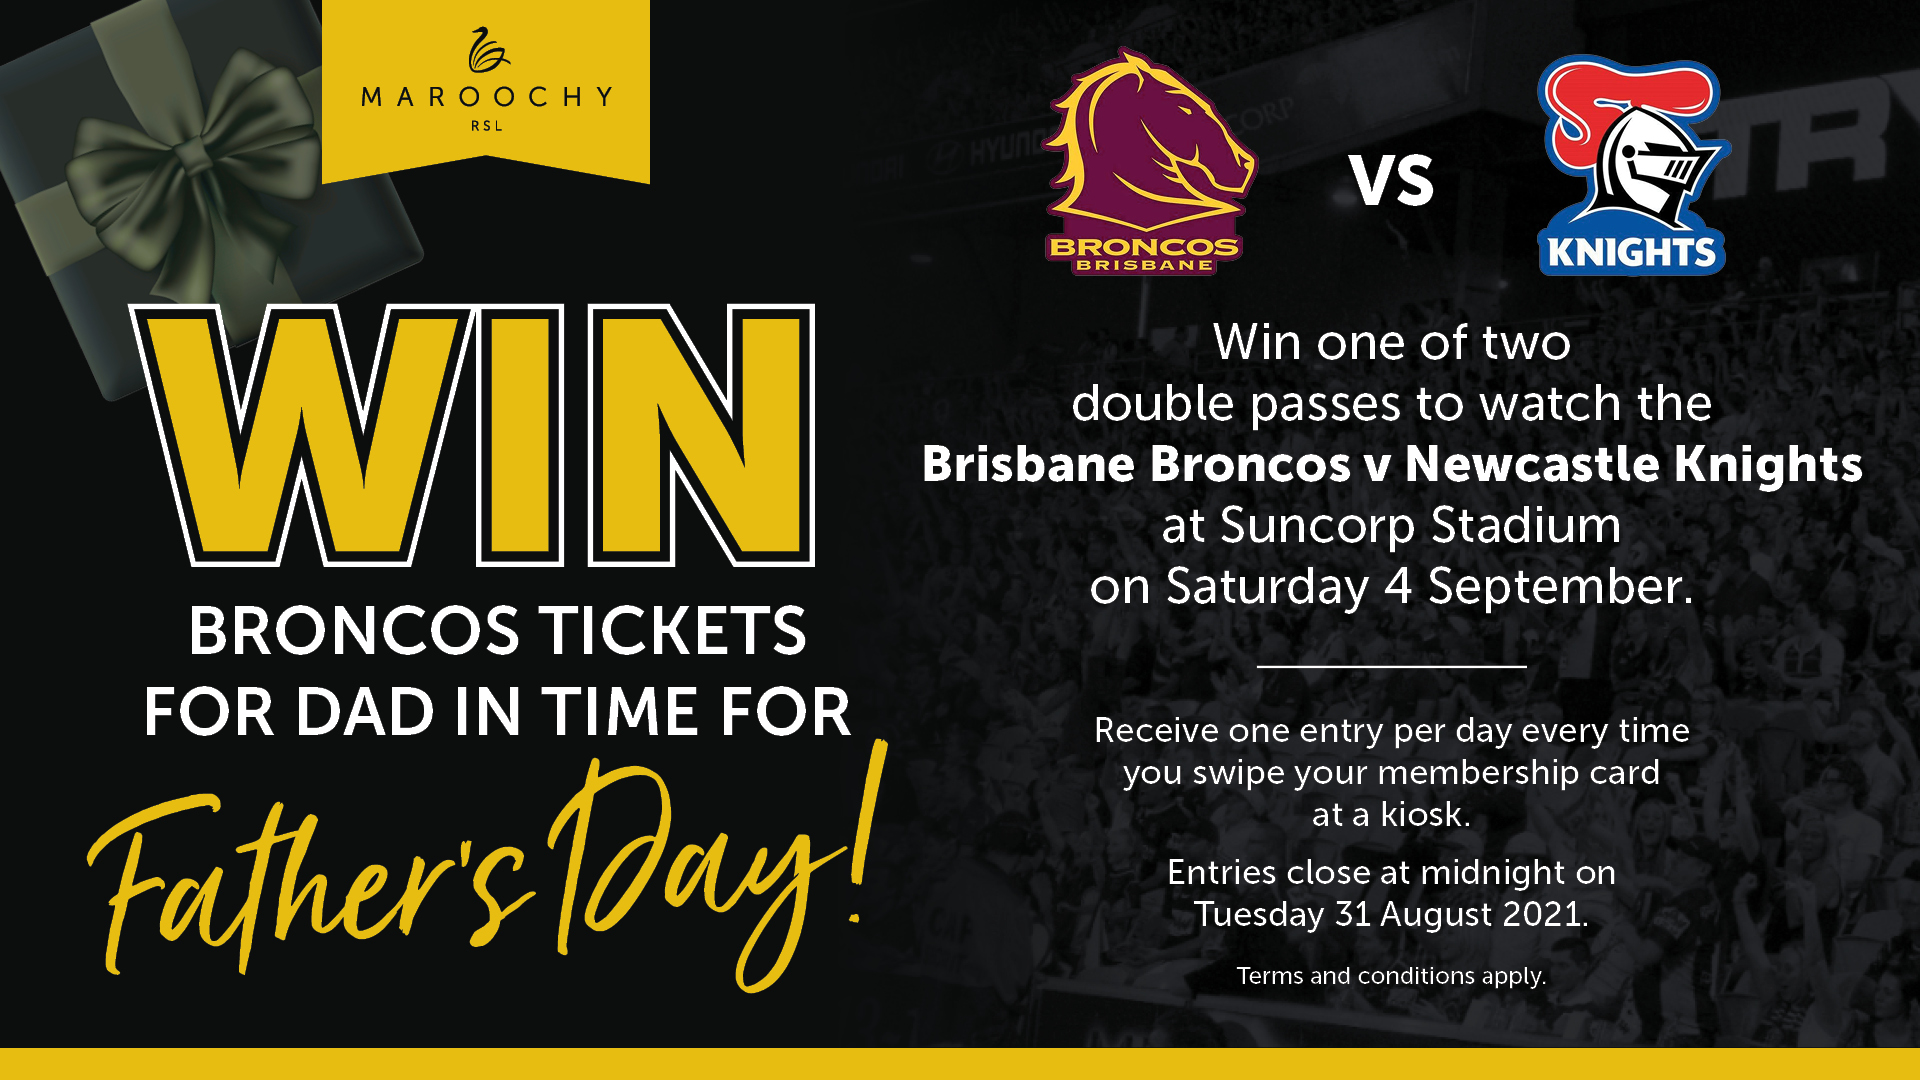 WIN one of Two Double Passes to Brisbane Broncos vs Newcastle Knights